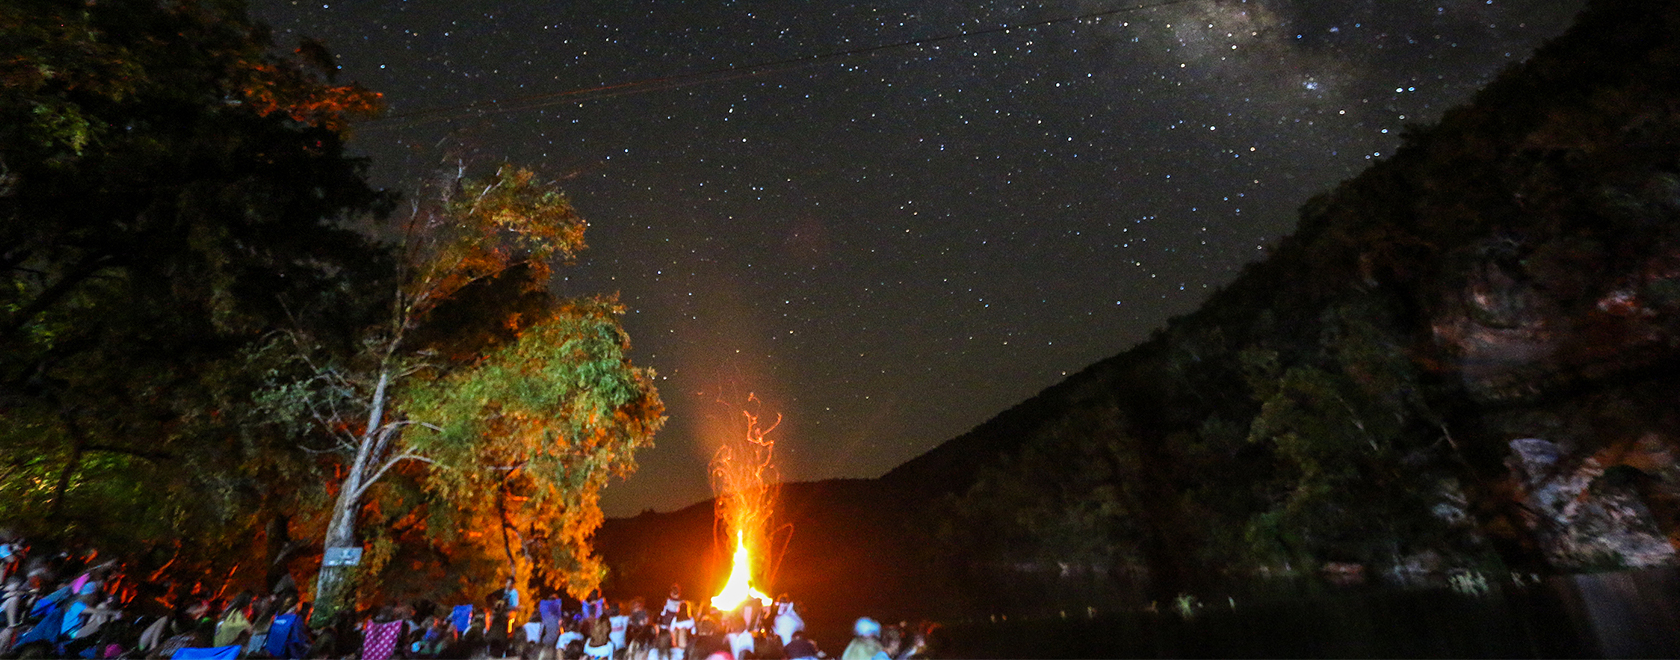 Night photo of a crowd overlooking a bonfire